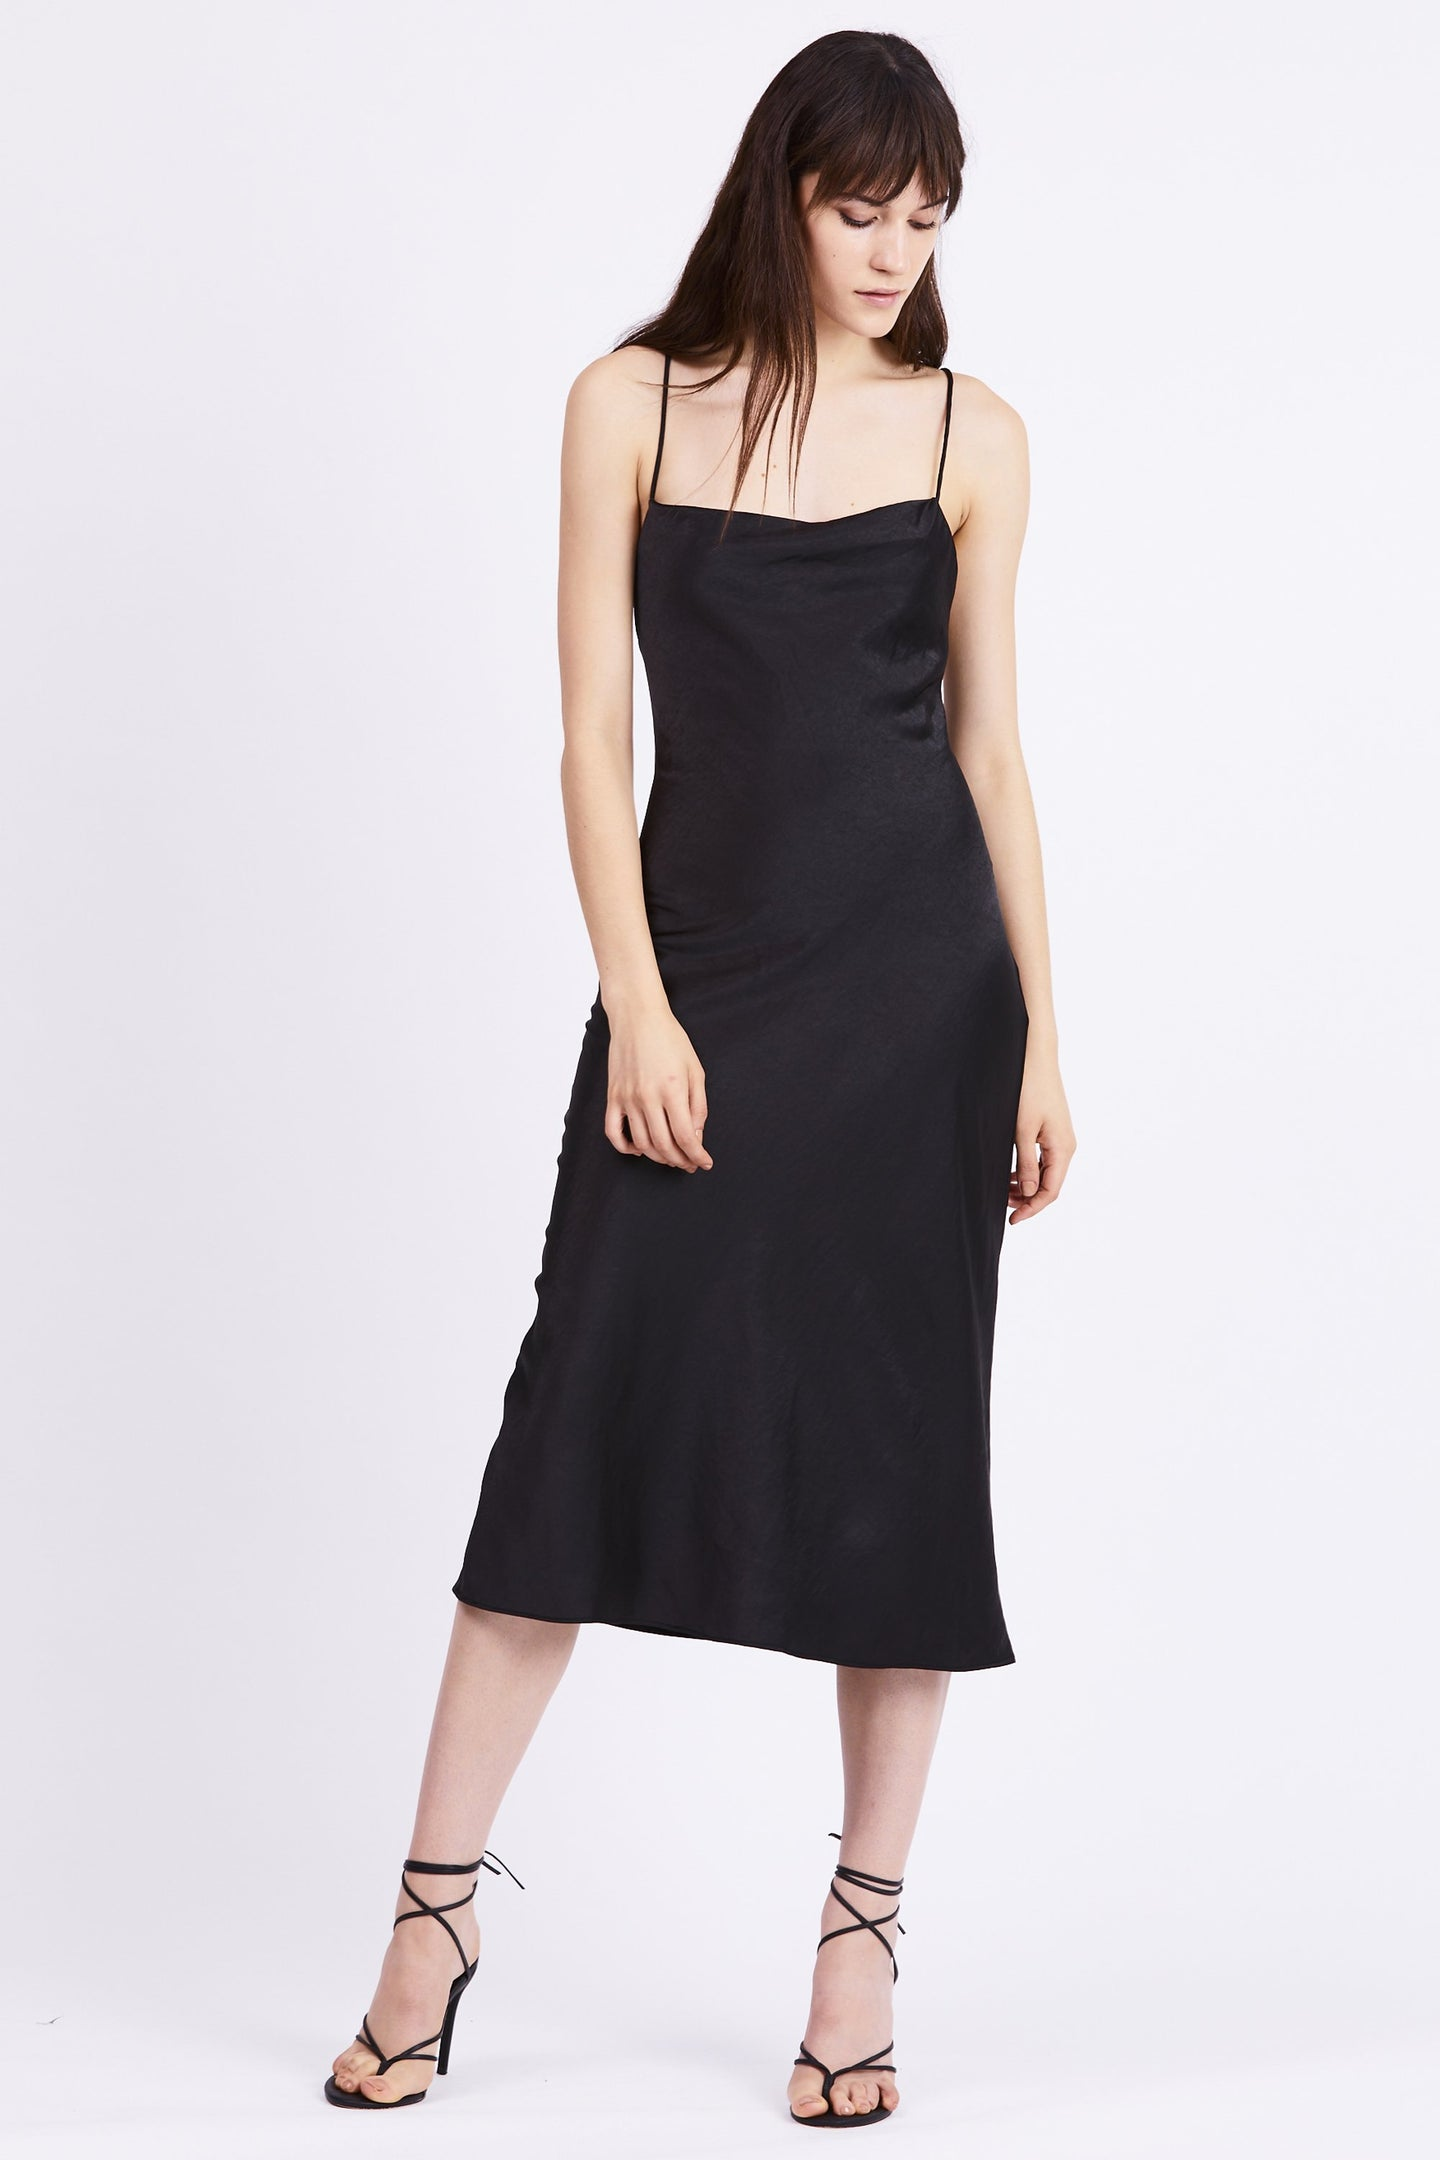 Say Bias Slip Dress Black